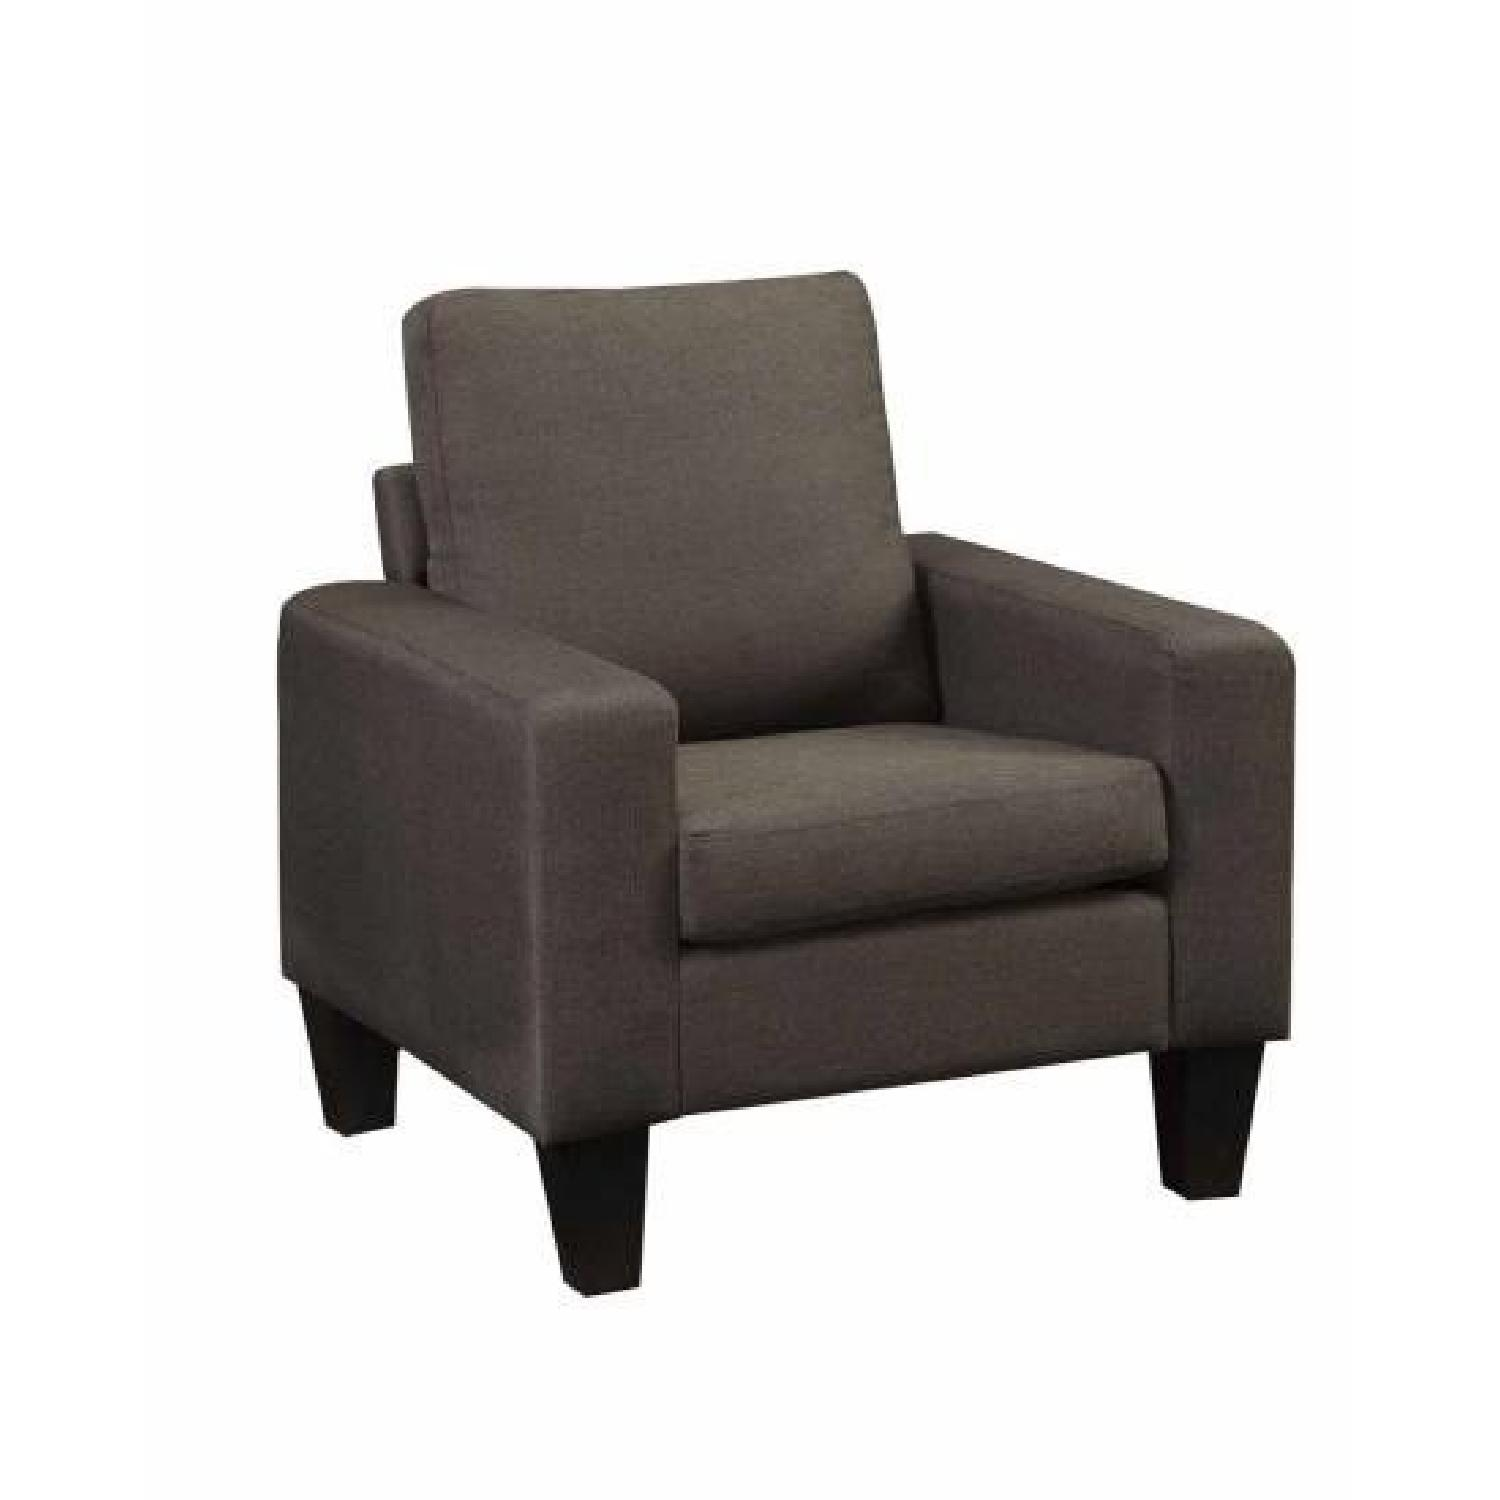 Arm Chair in Grey Linen Fabric - image-0